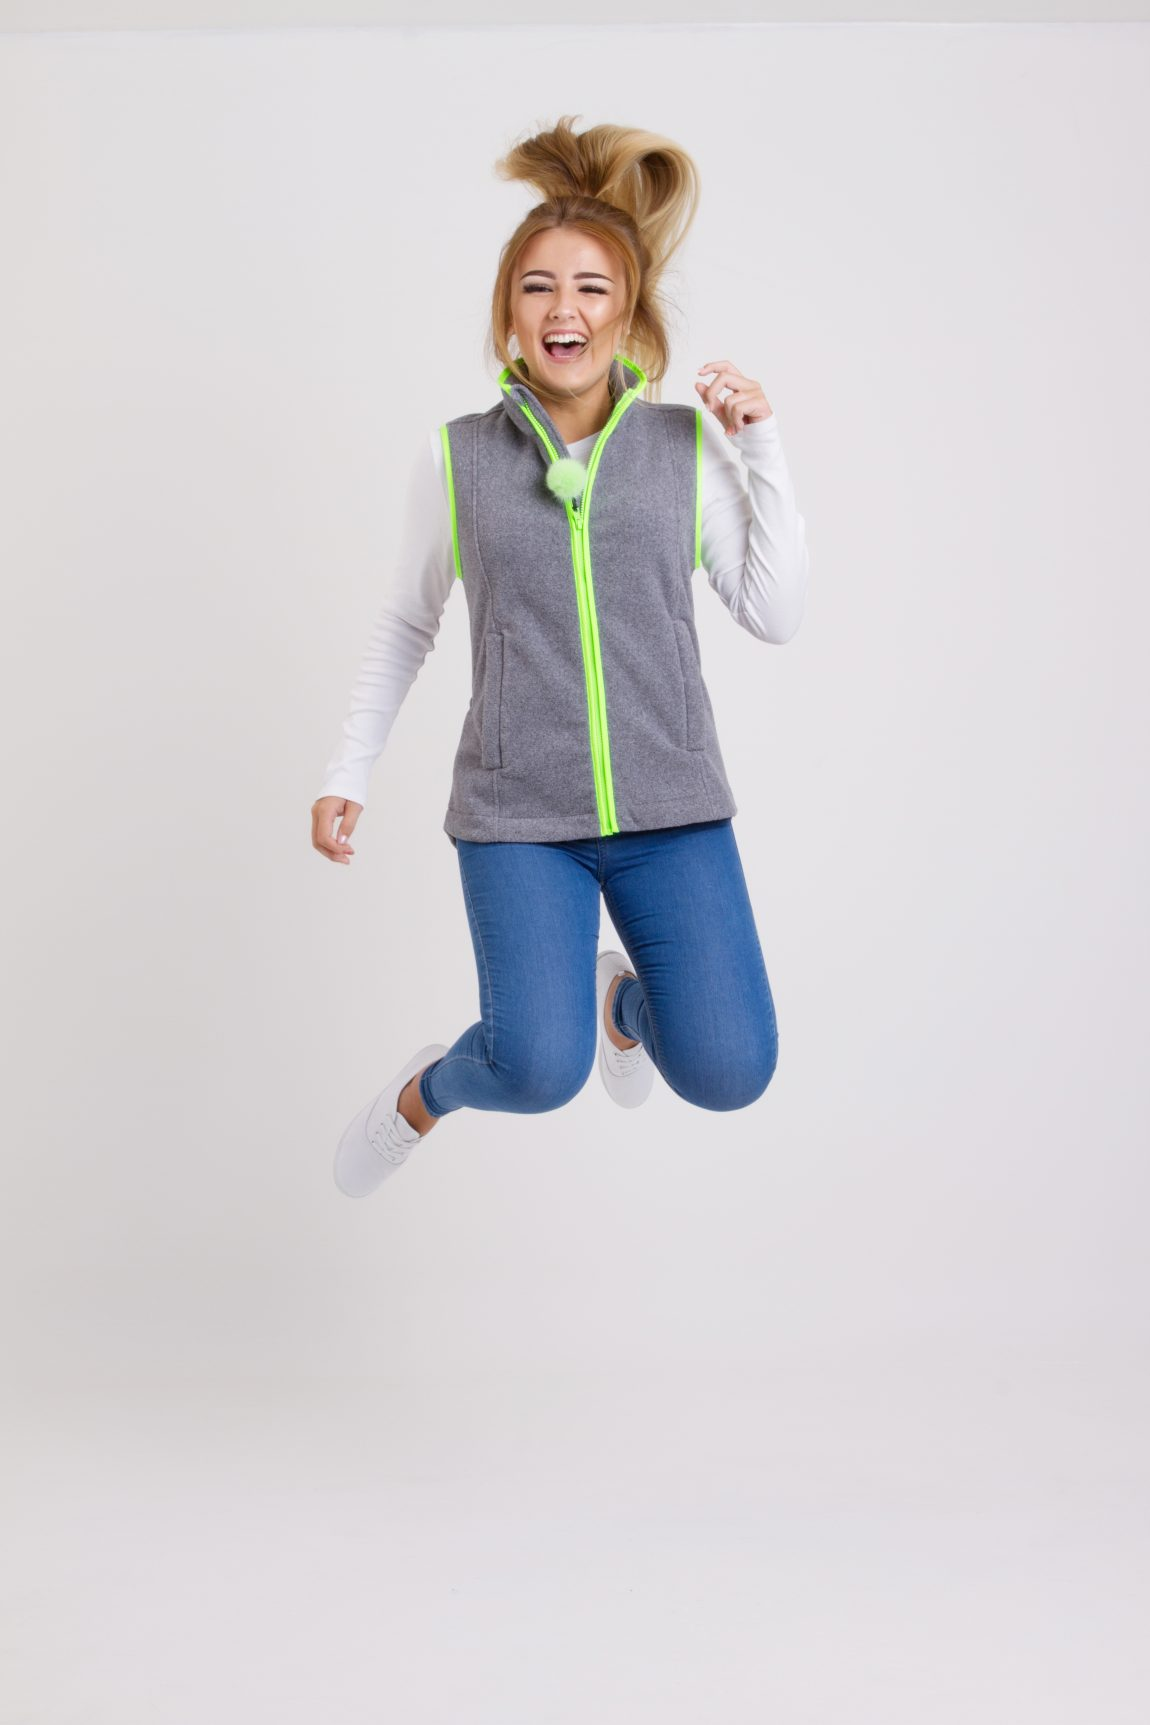 girl jumping in nattily dressed gilet